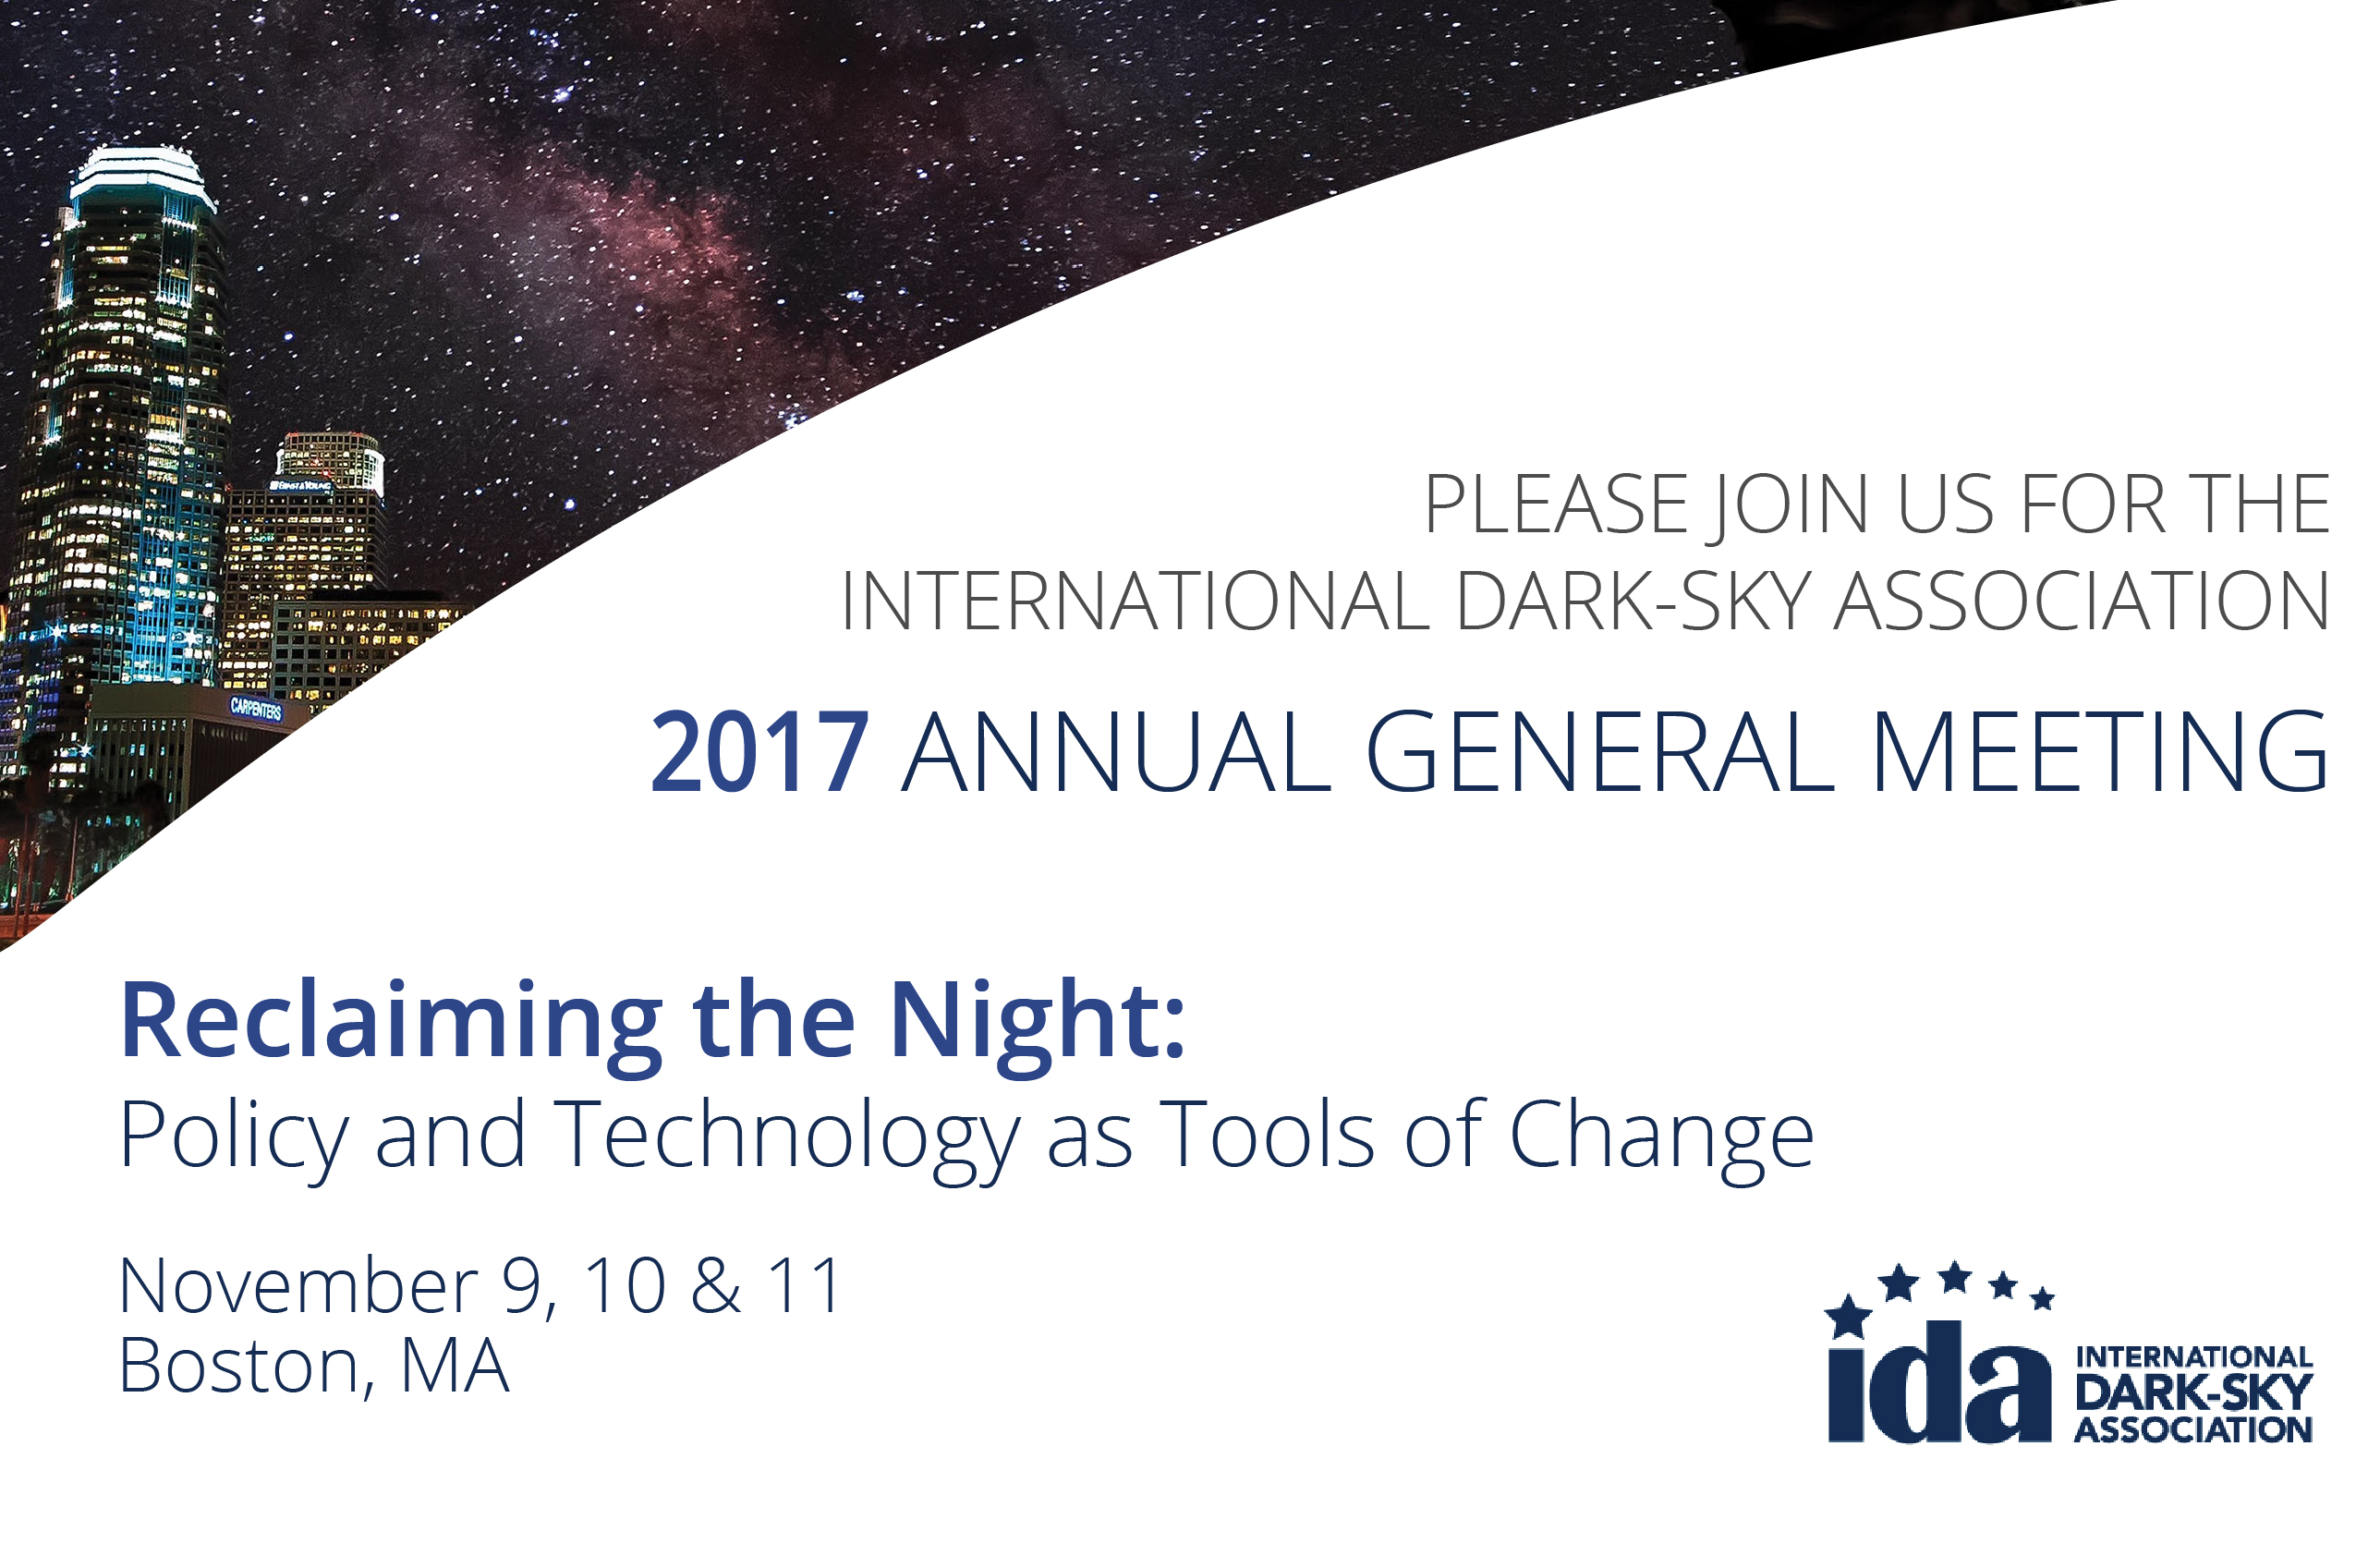 Reclaiming the Night: IDA's 2017 Annual General Meeting Image